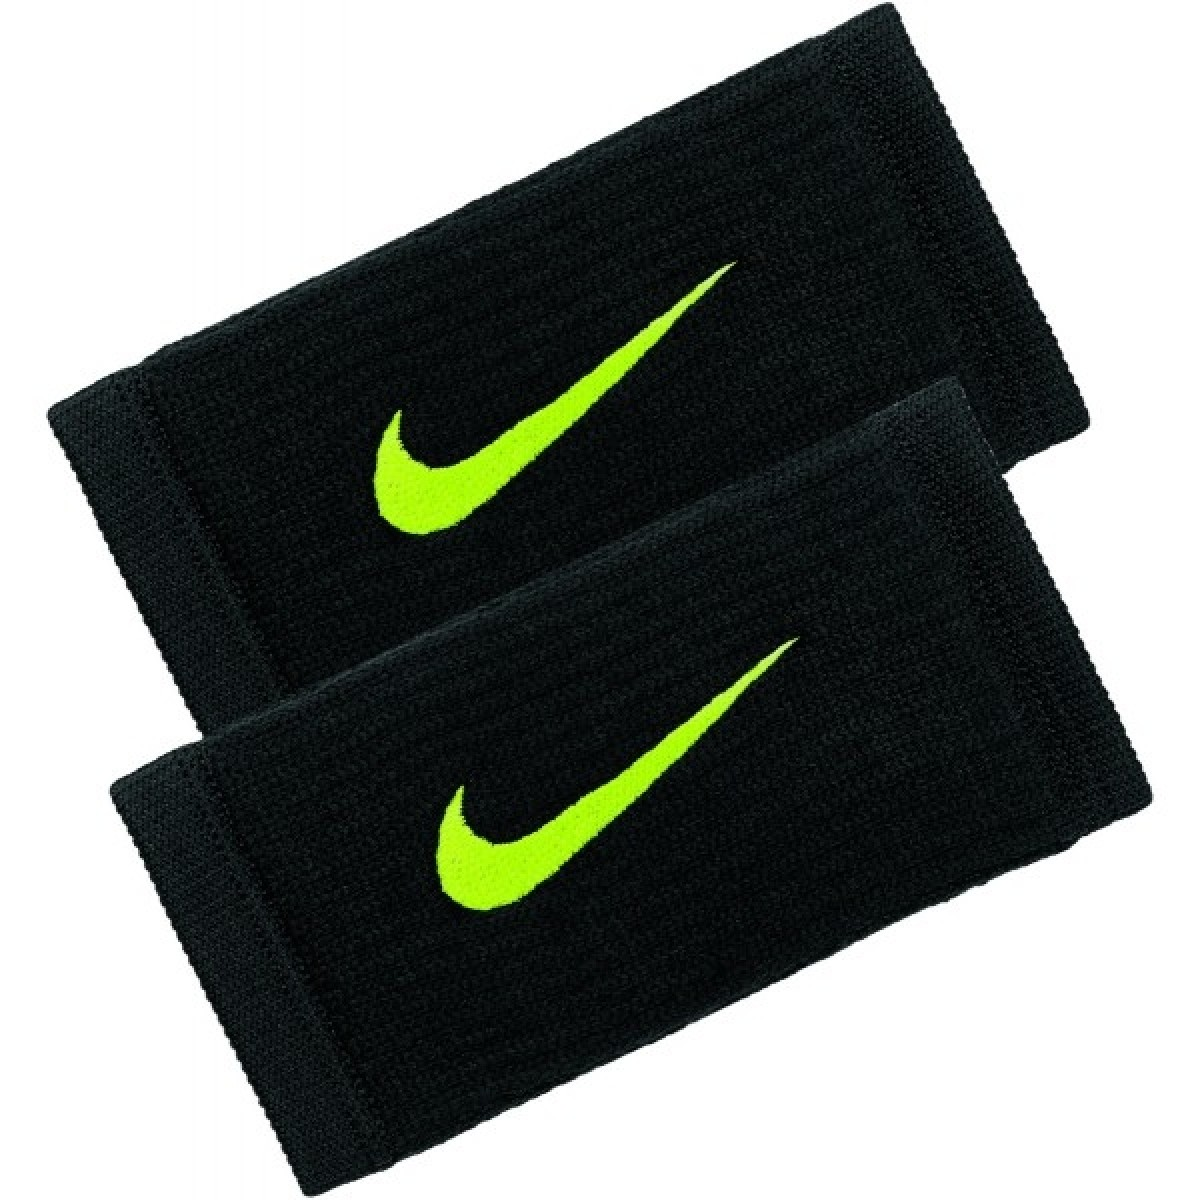 SERRE POIGNET NIKE DOUBLE LARGEUR DRI FIT REVEAL